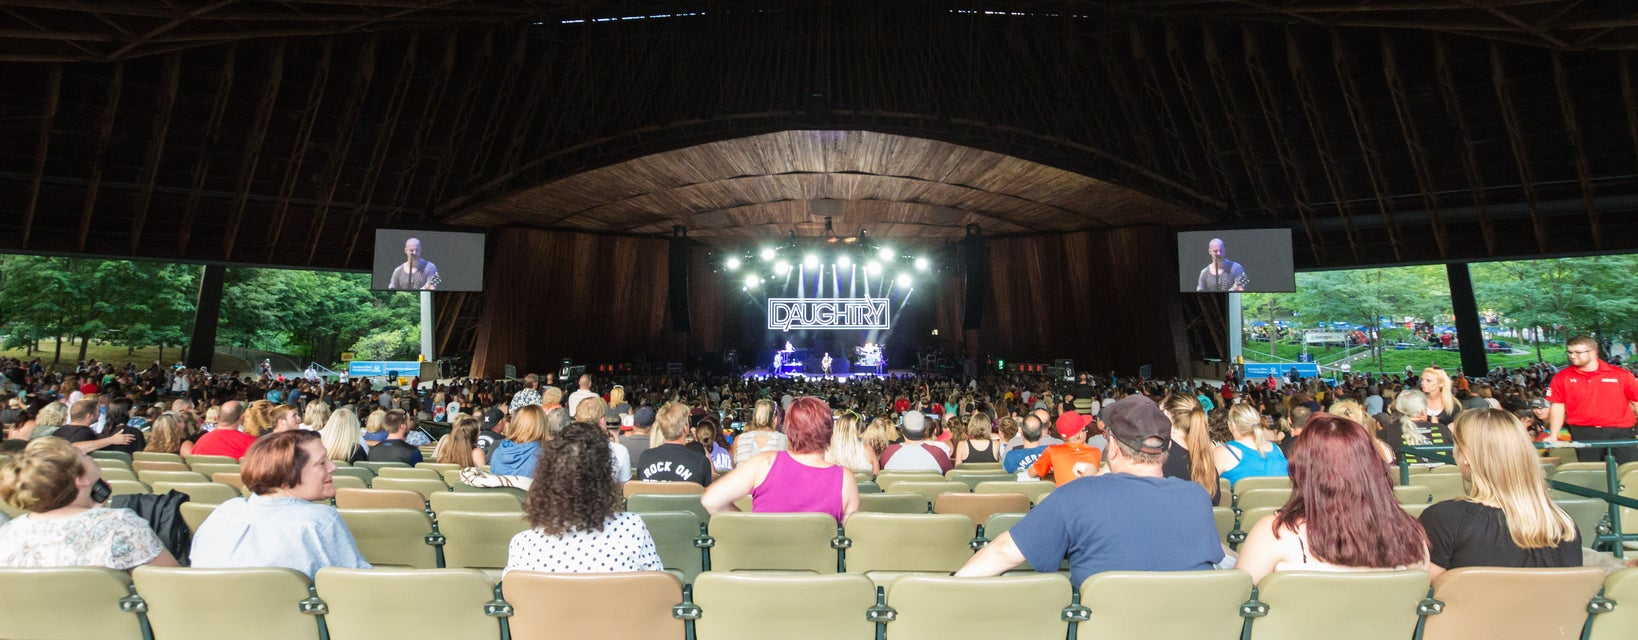 Seat view from Pavilion